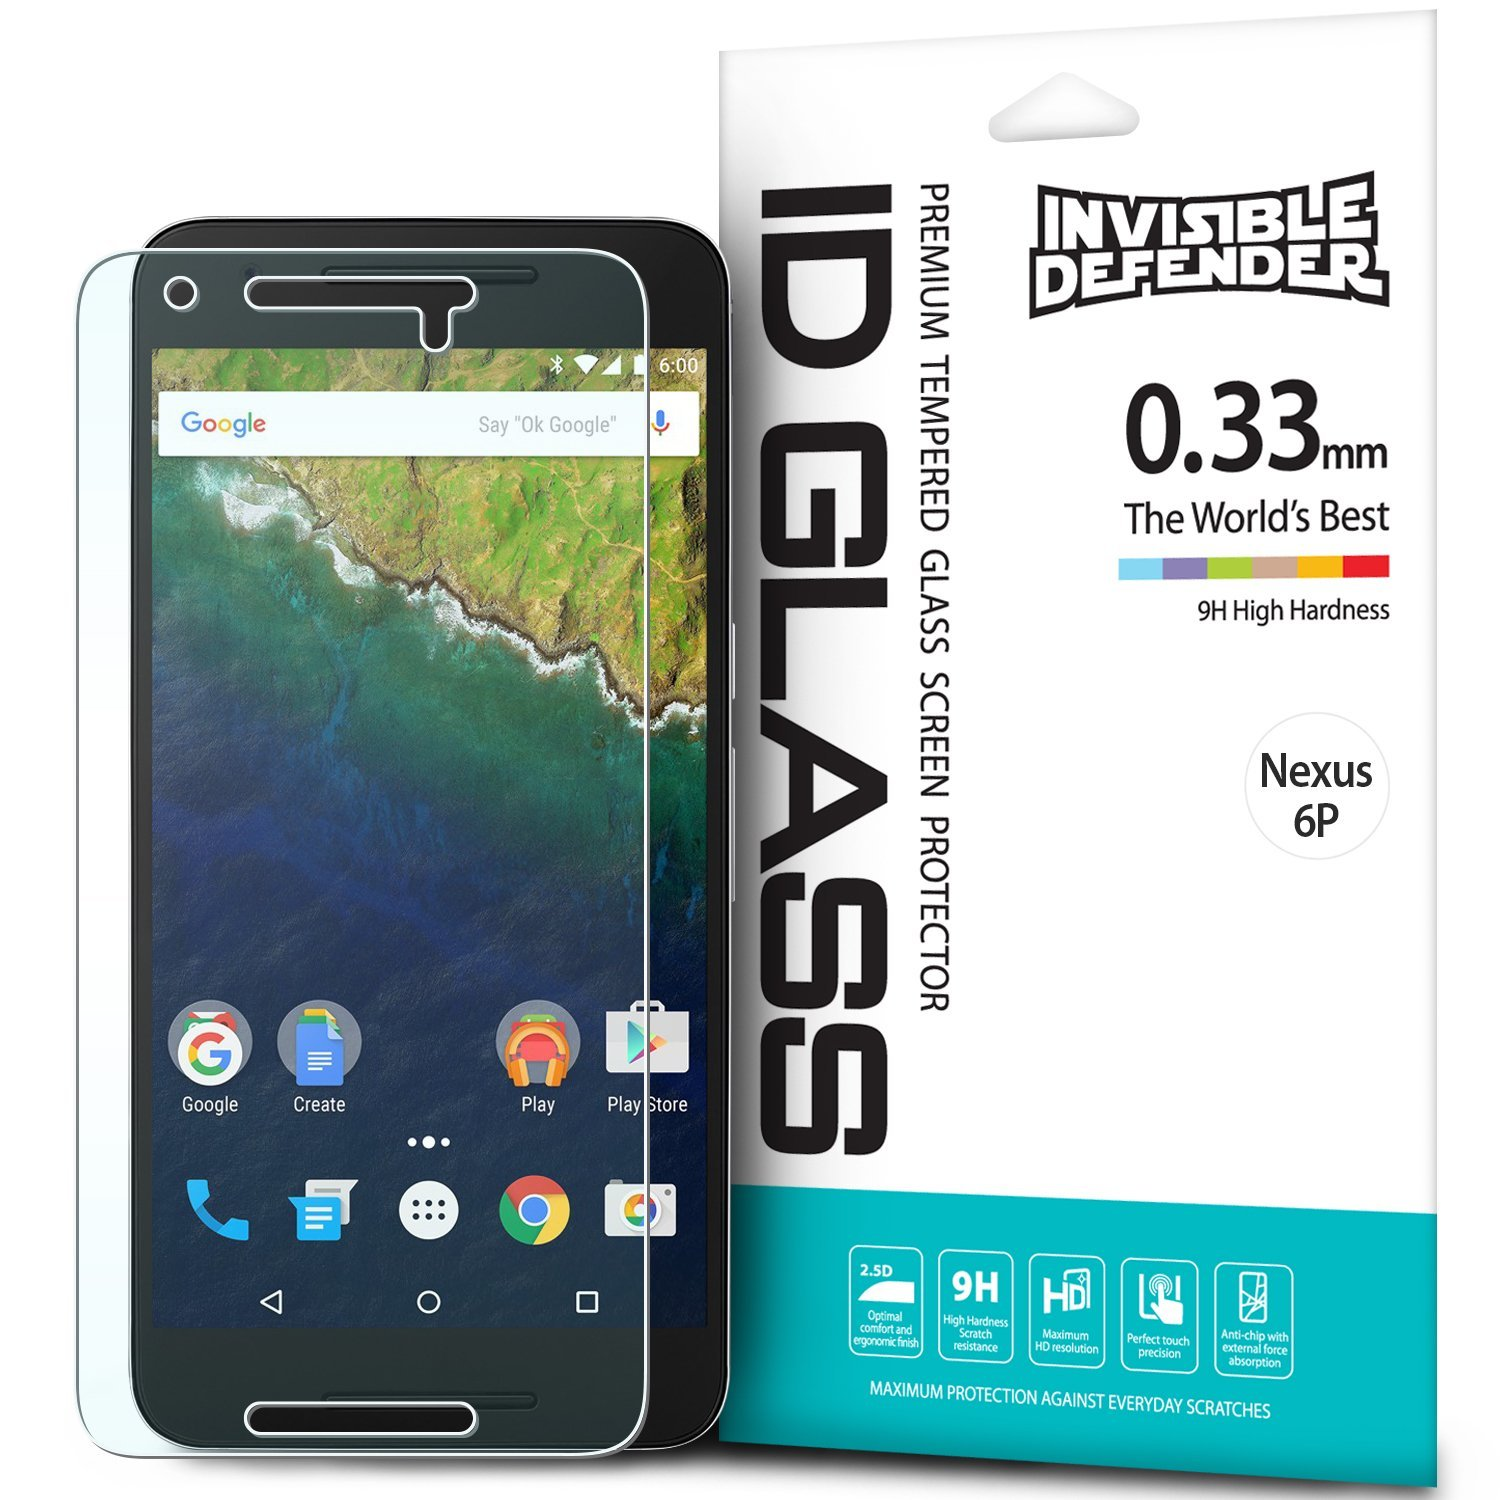 Huawei Google Nexus 6P Screen Protector, Ringke [Invisible Defender] Tempered Glass HD Ultra Thin Scratch Resistant, Bubble Free, Protective Screen Guard Film